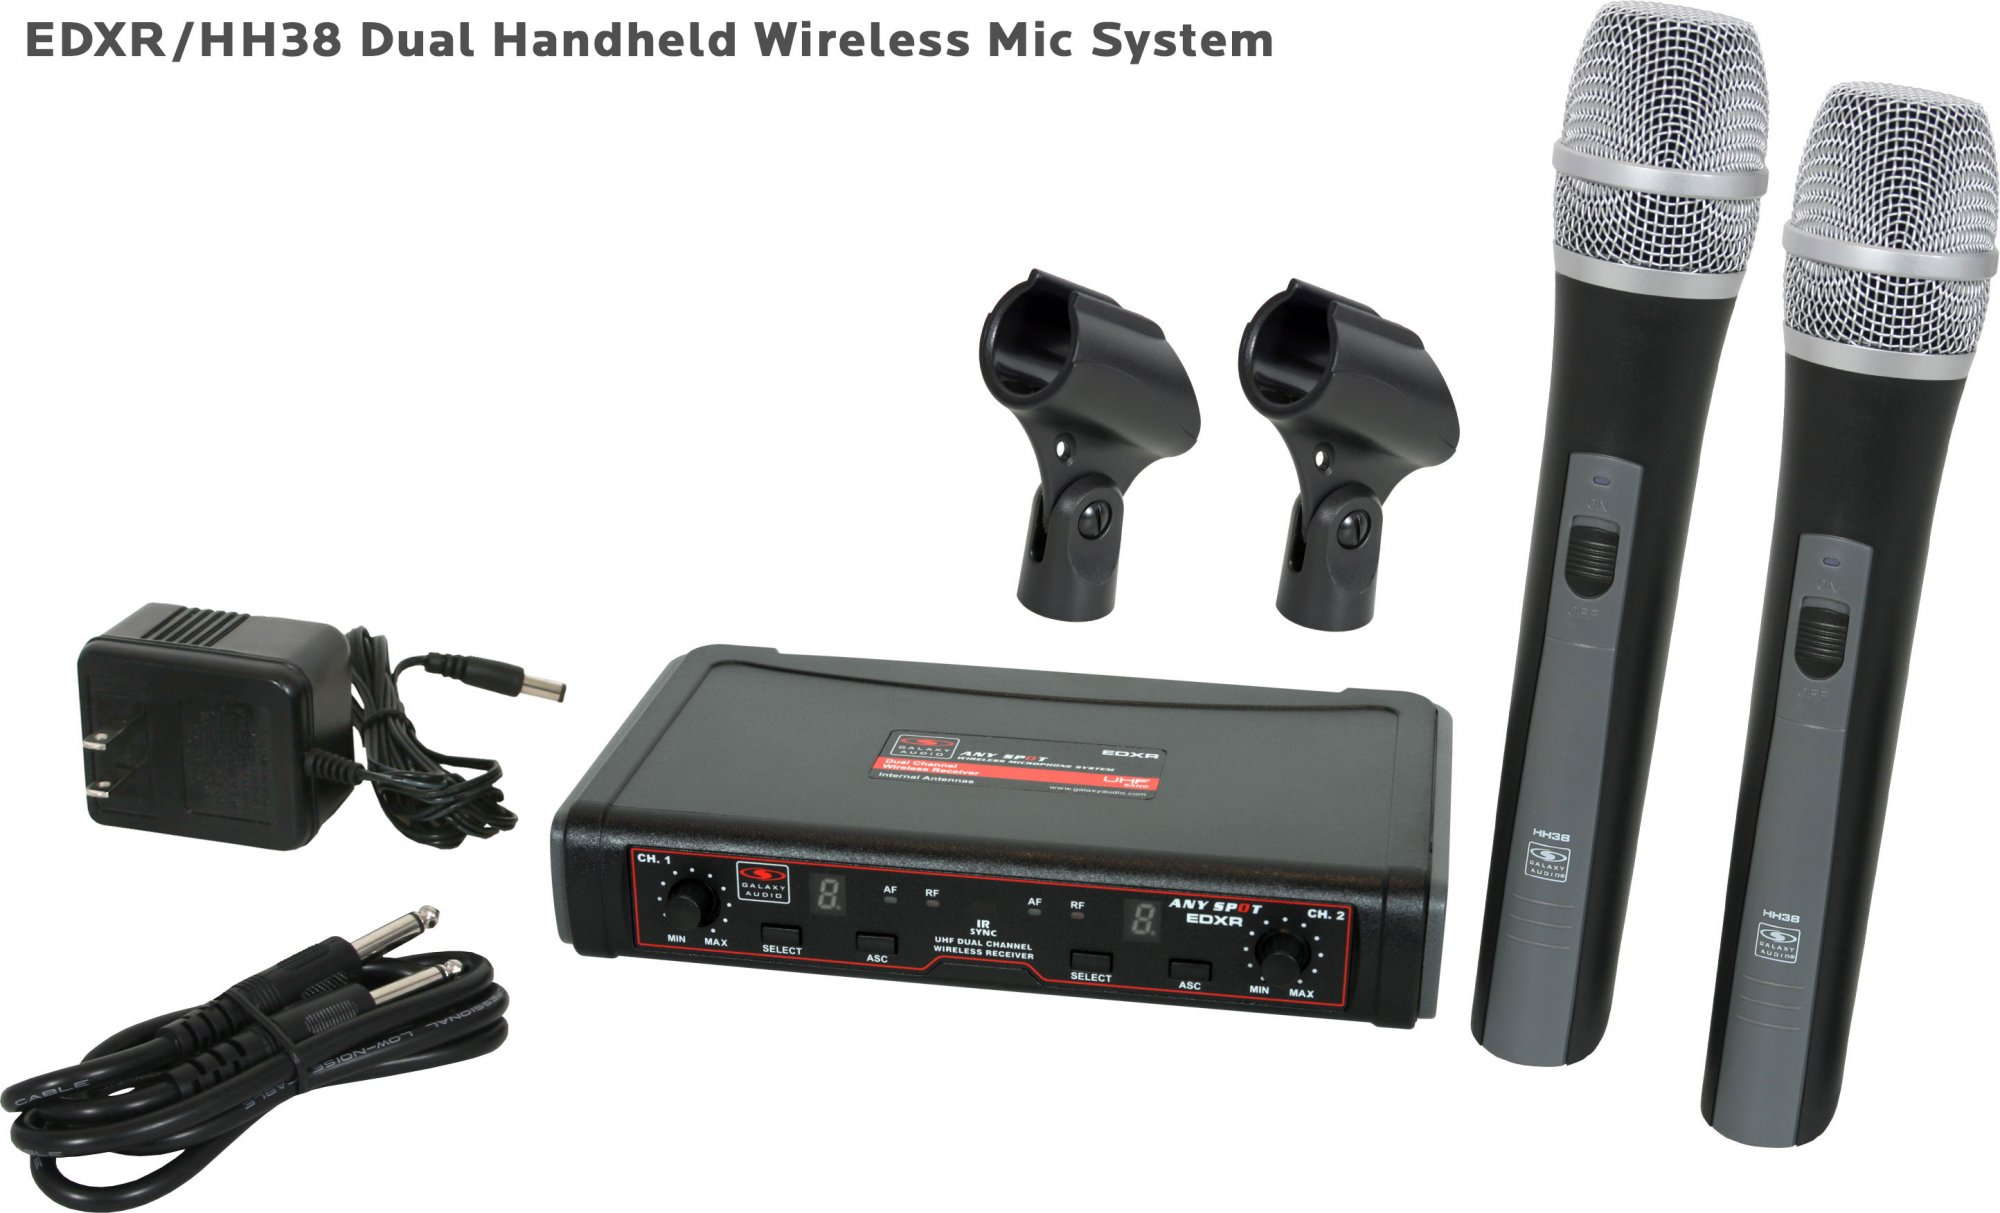 Galaxy Audio EDXR/HH38N Dual Channel Wireless Microphone System includes the EDXR Receiver and 2 HH38 Handheld Transmitters Frequency CODE N 518-542 MHz Band N